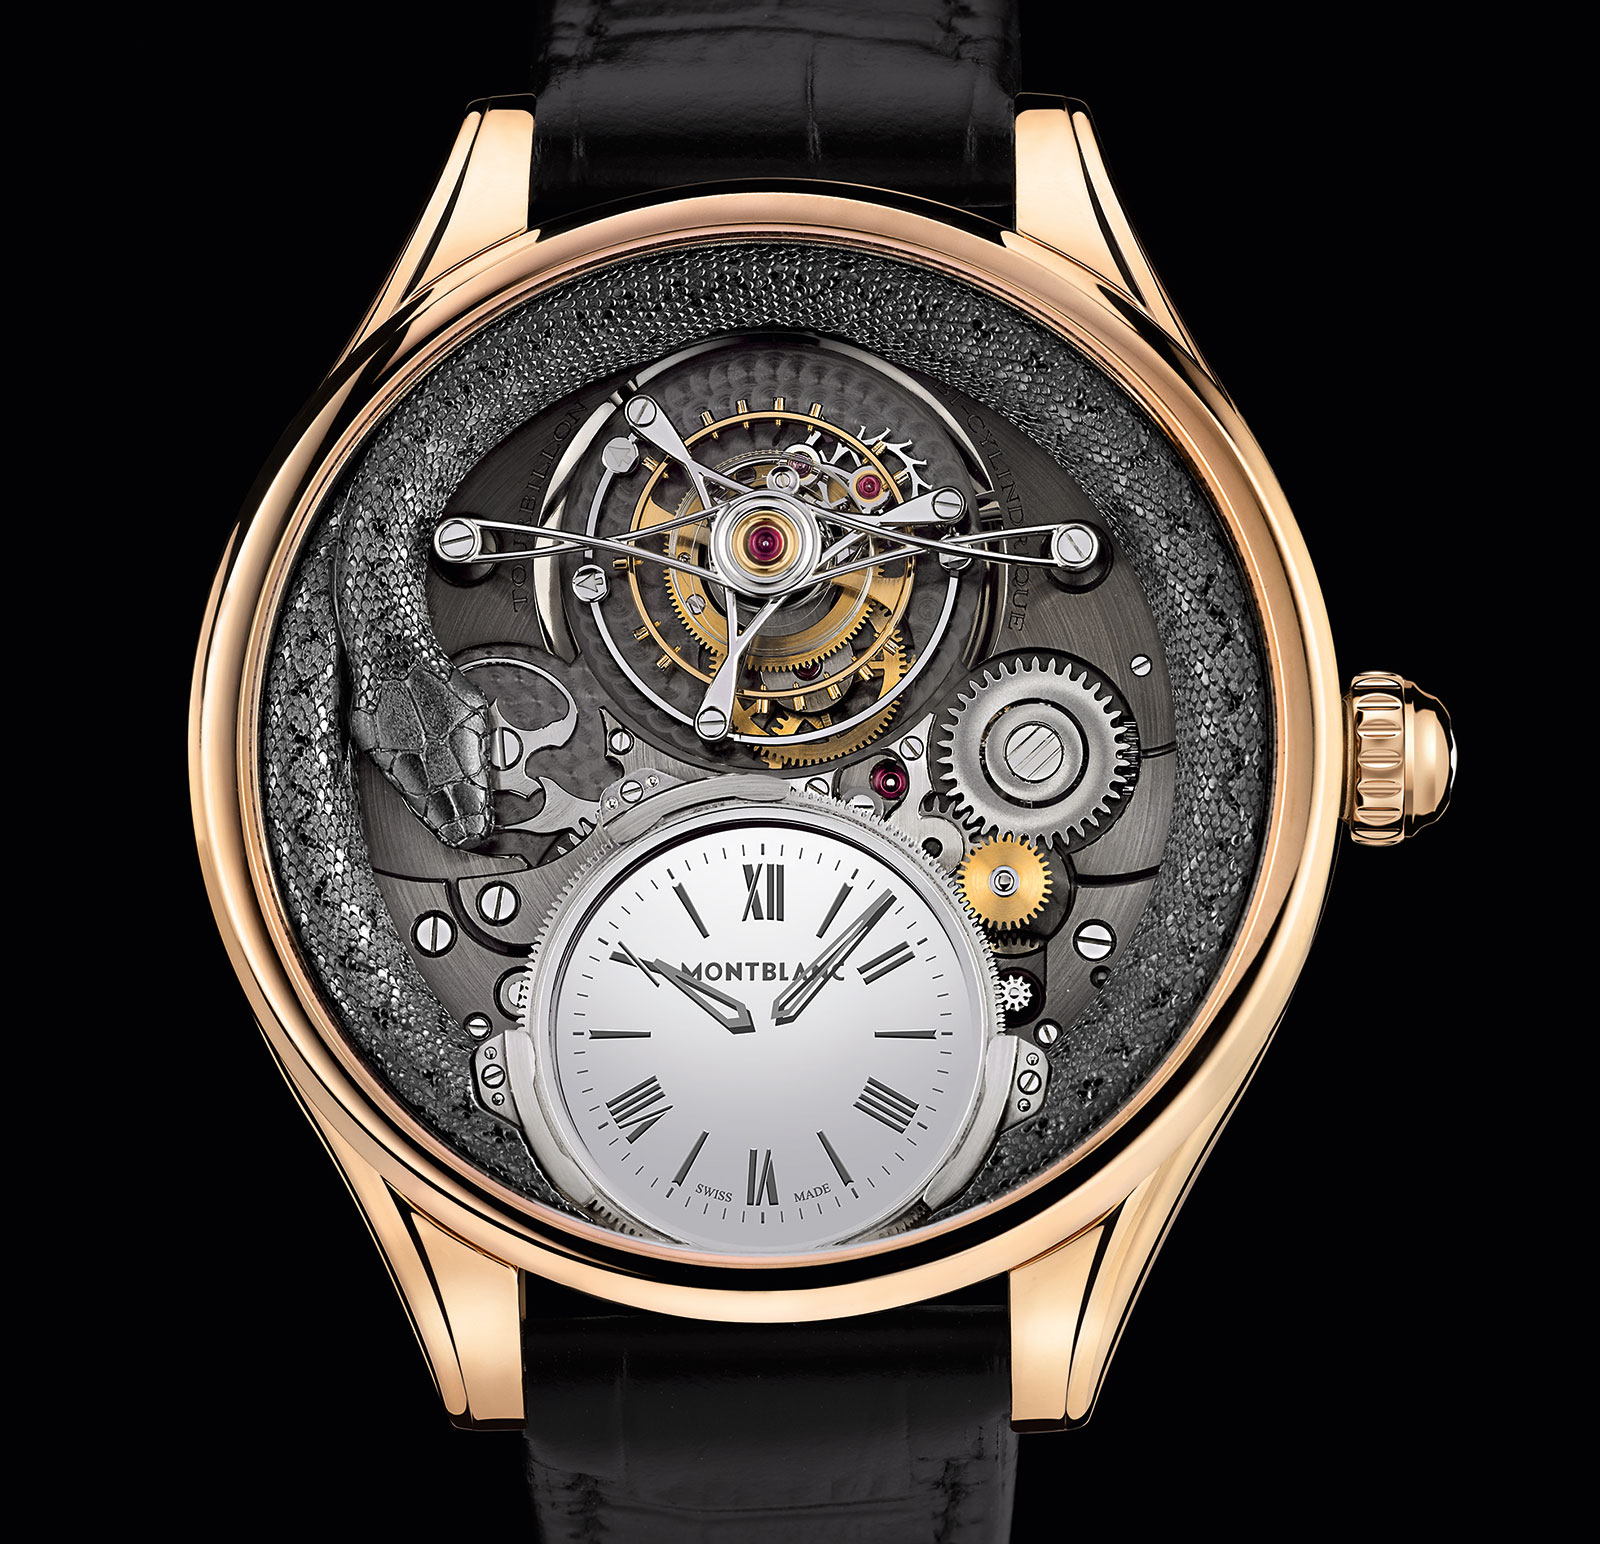 Montblanc Tourbillon Bi-Cylindrique 110 Years Anniversary Limited Edition 2